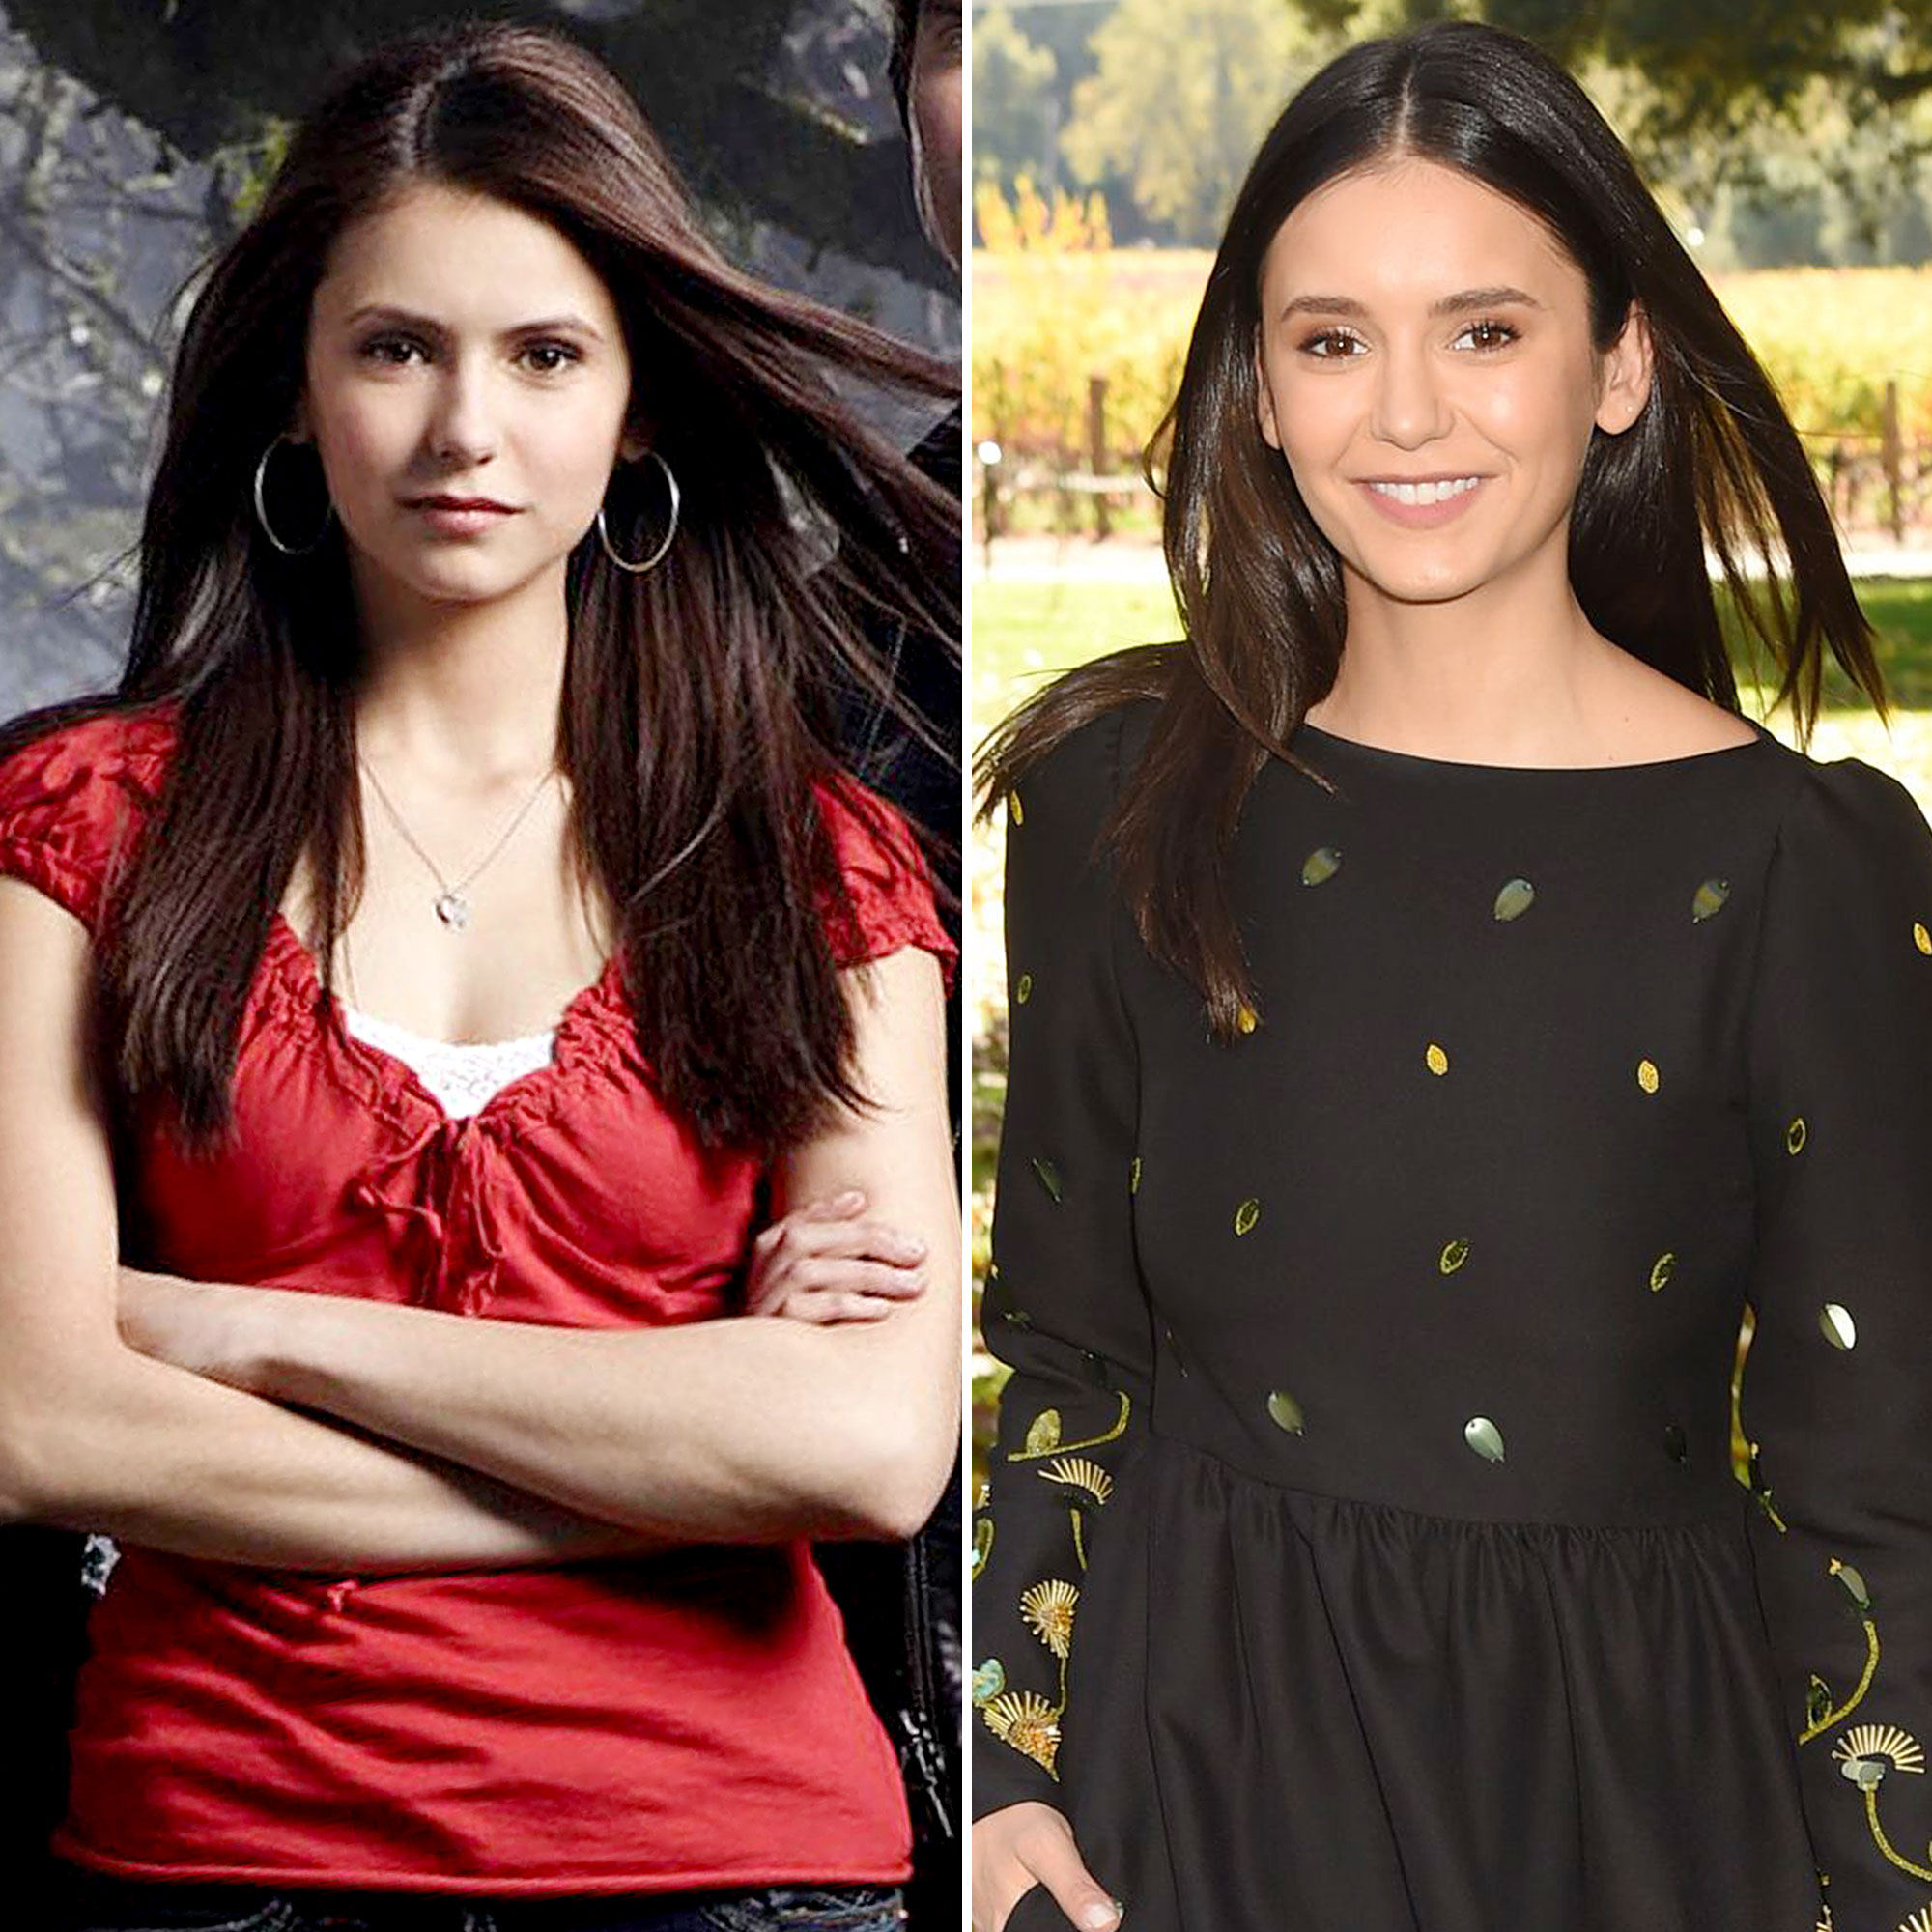 Vampire Diaries Cast Where Are They Now